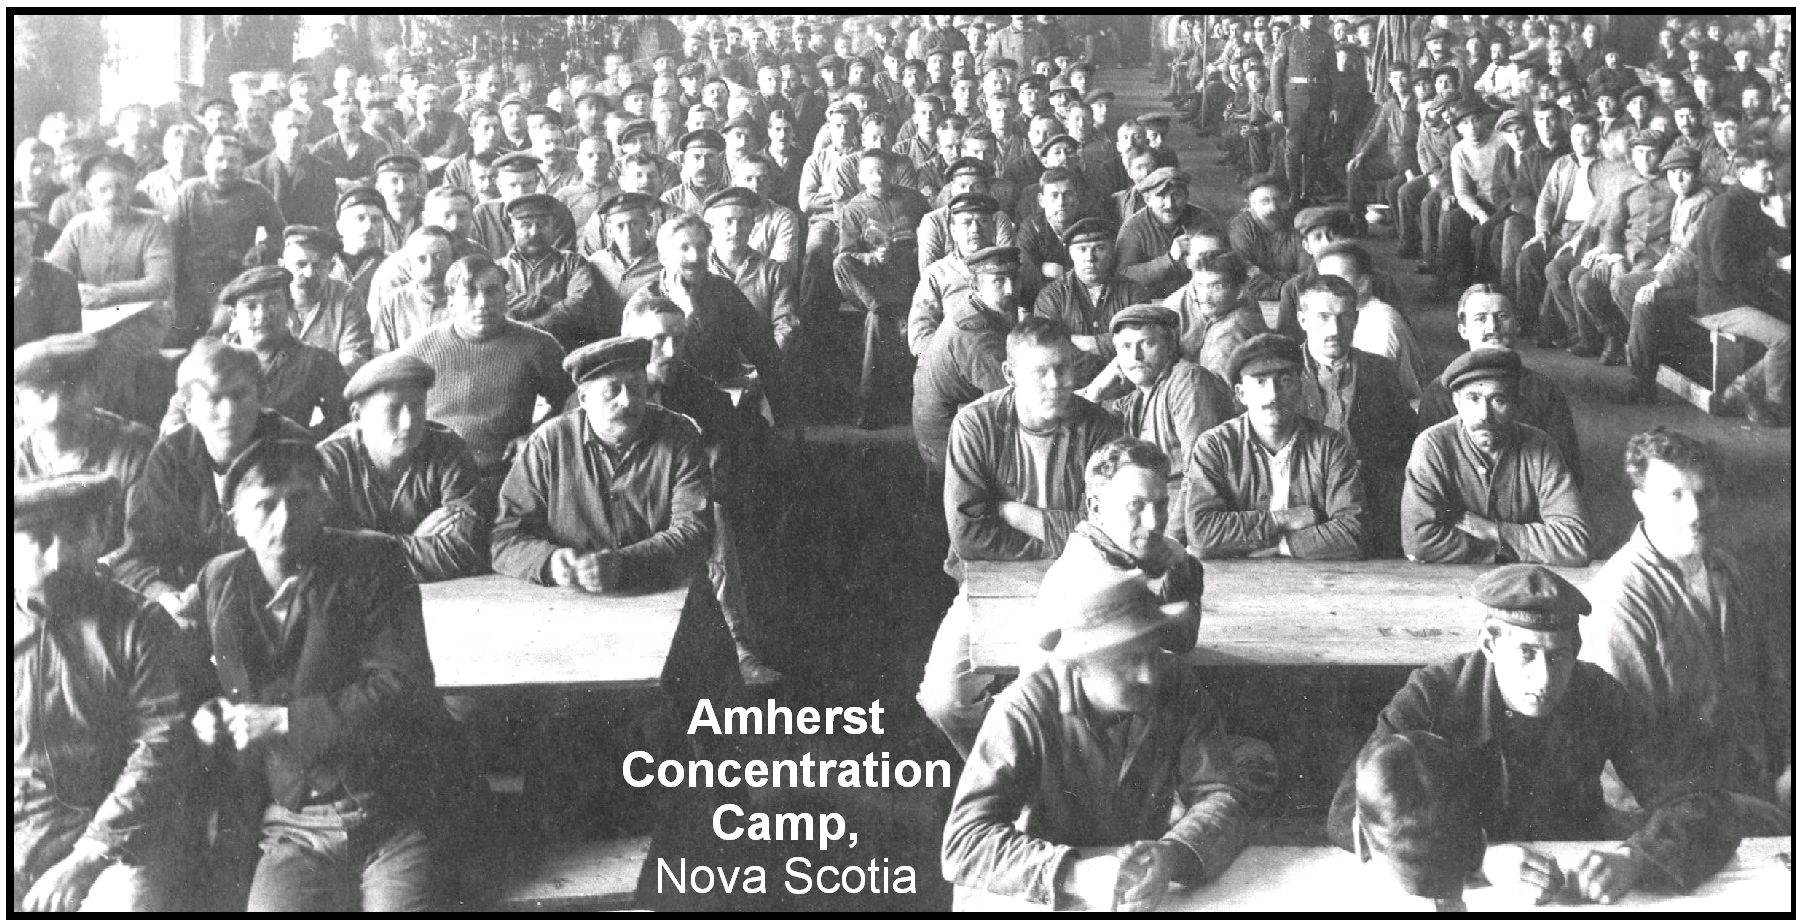 Amherst Concentration Camp in Nova Scotia